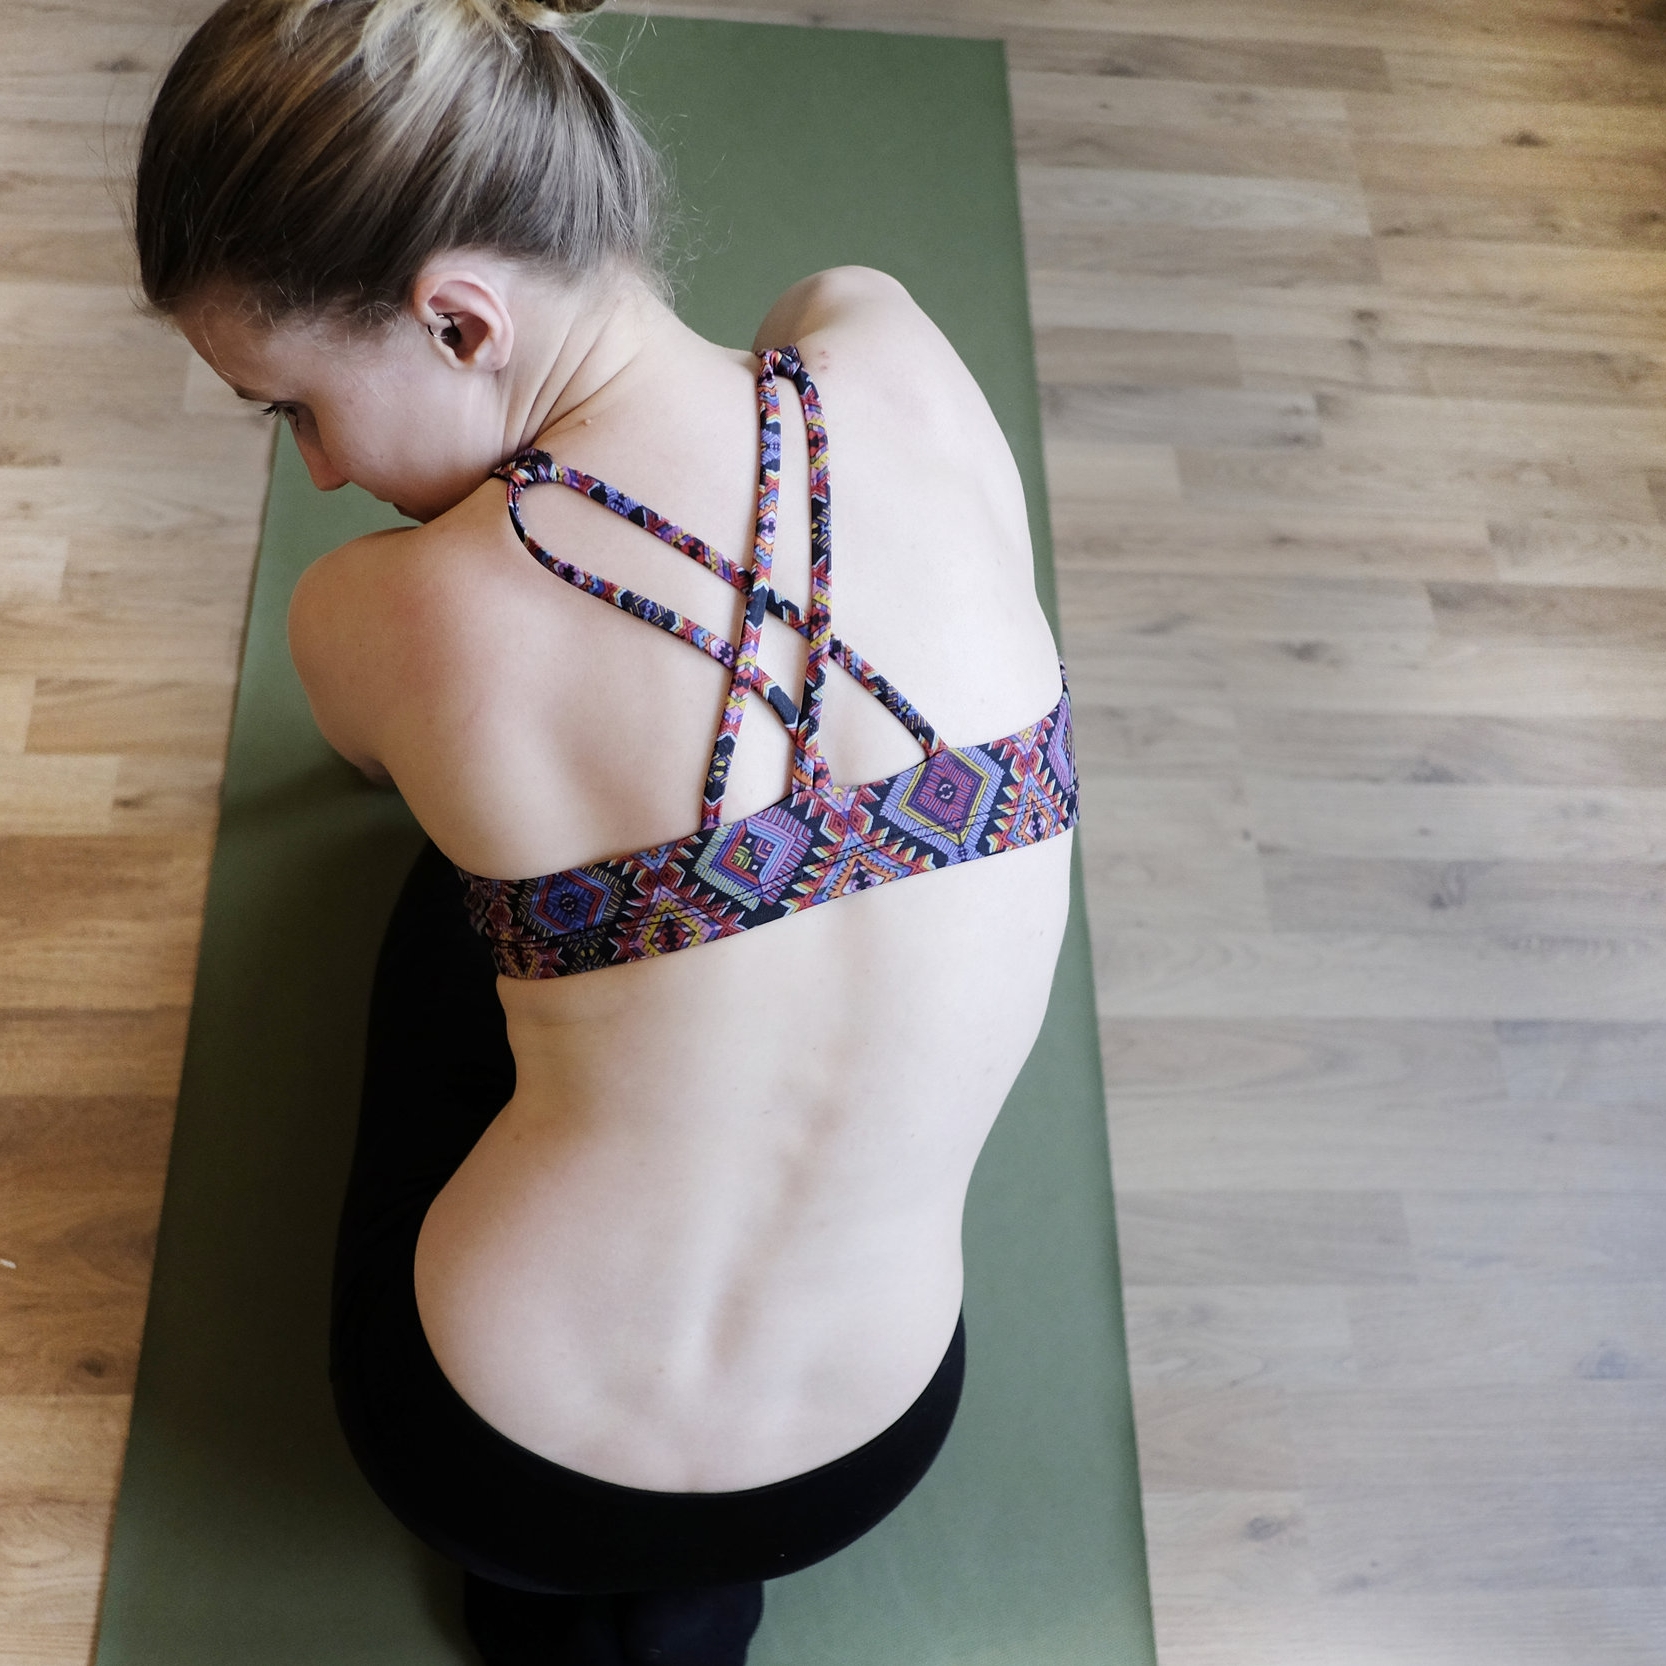 25 hour scoliosis -